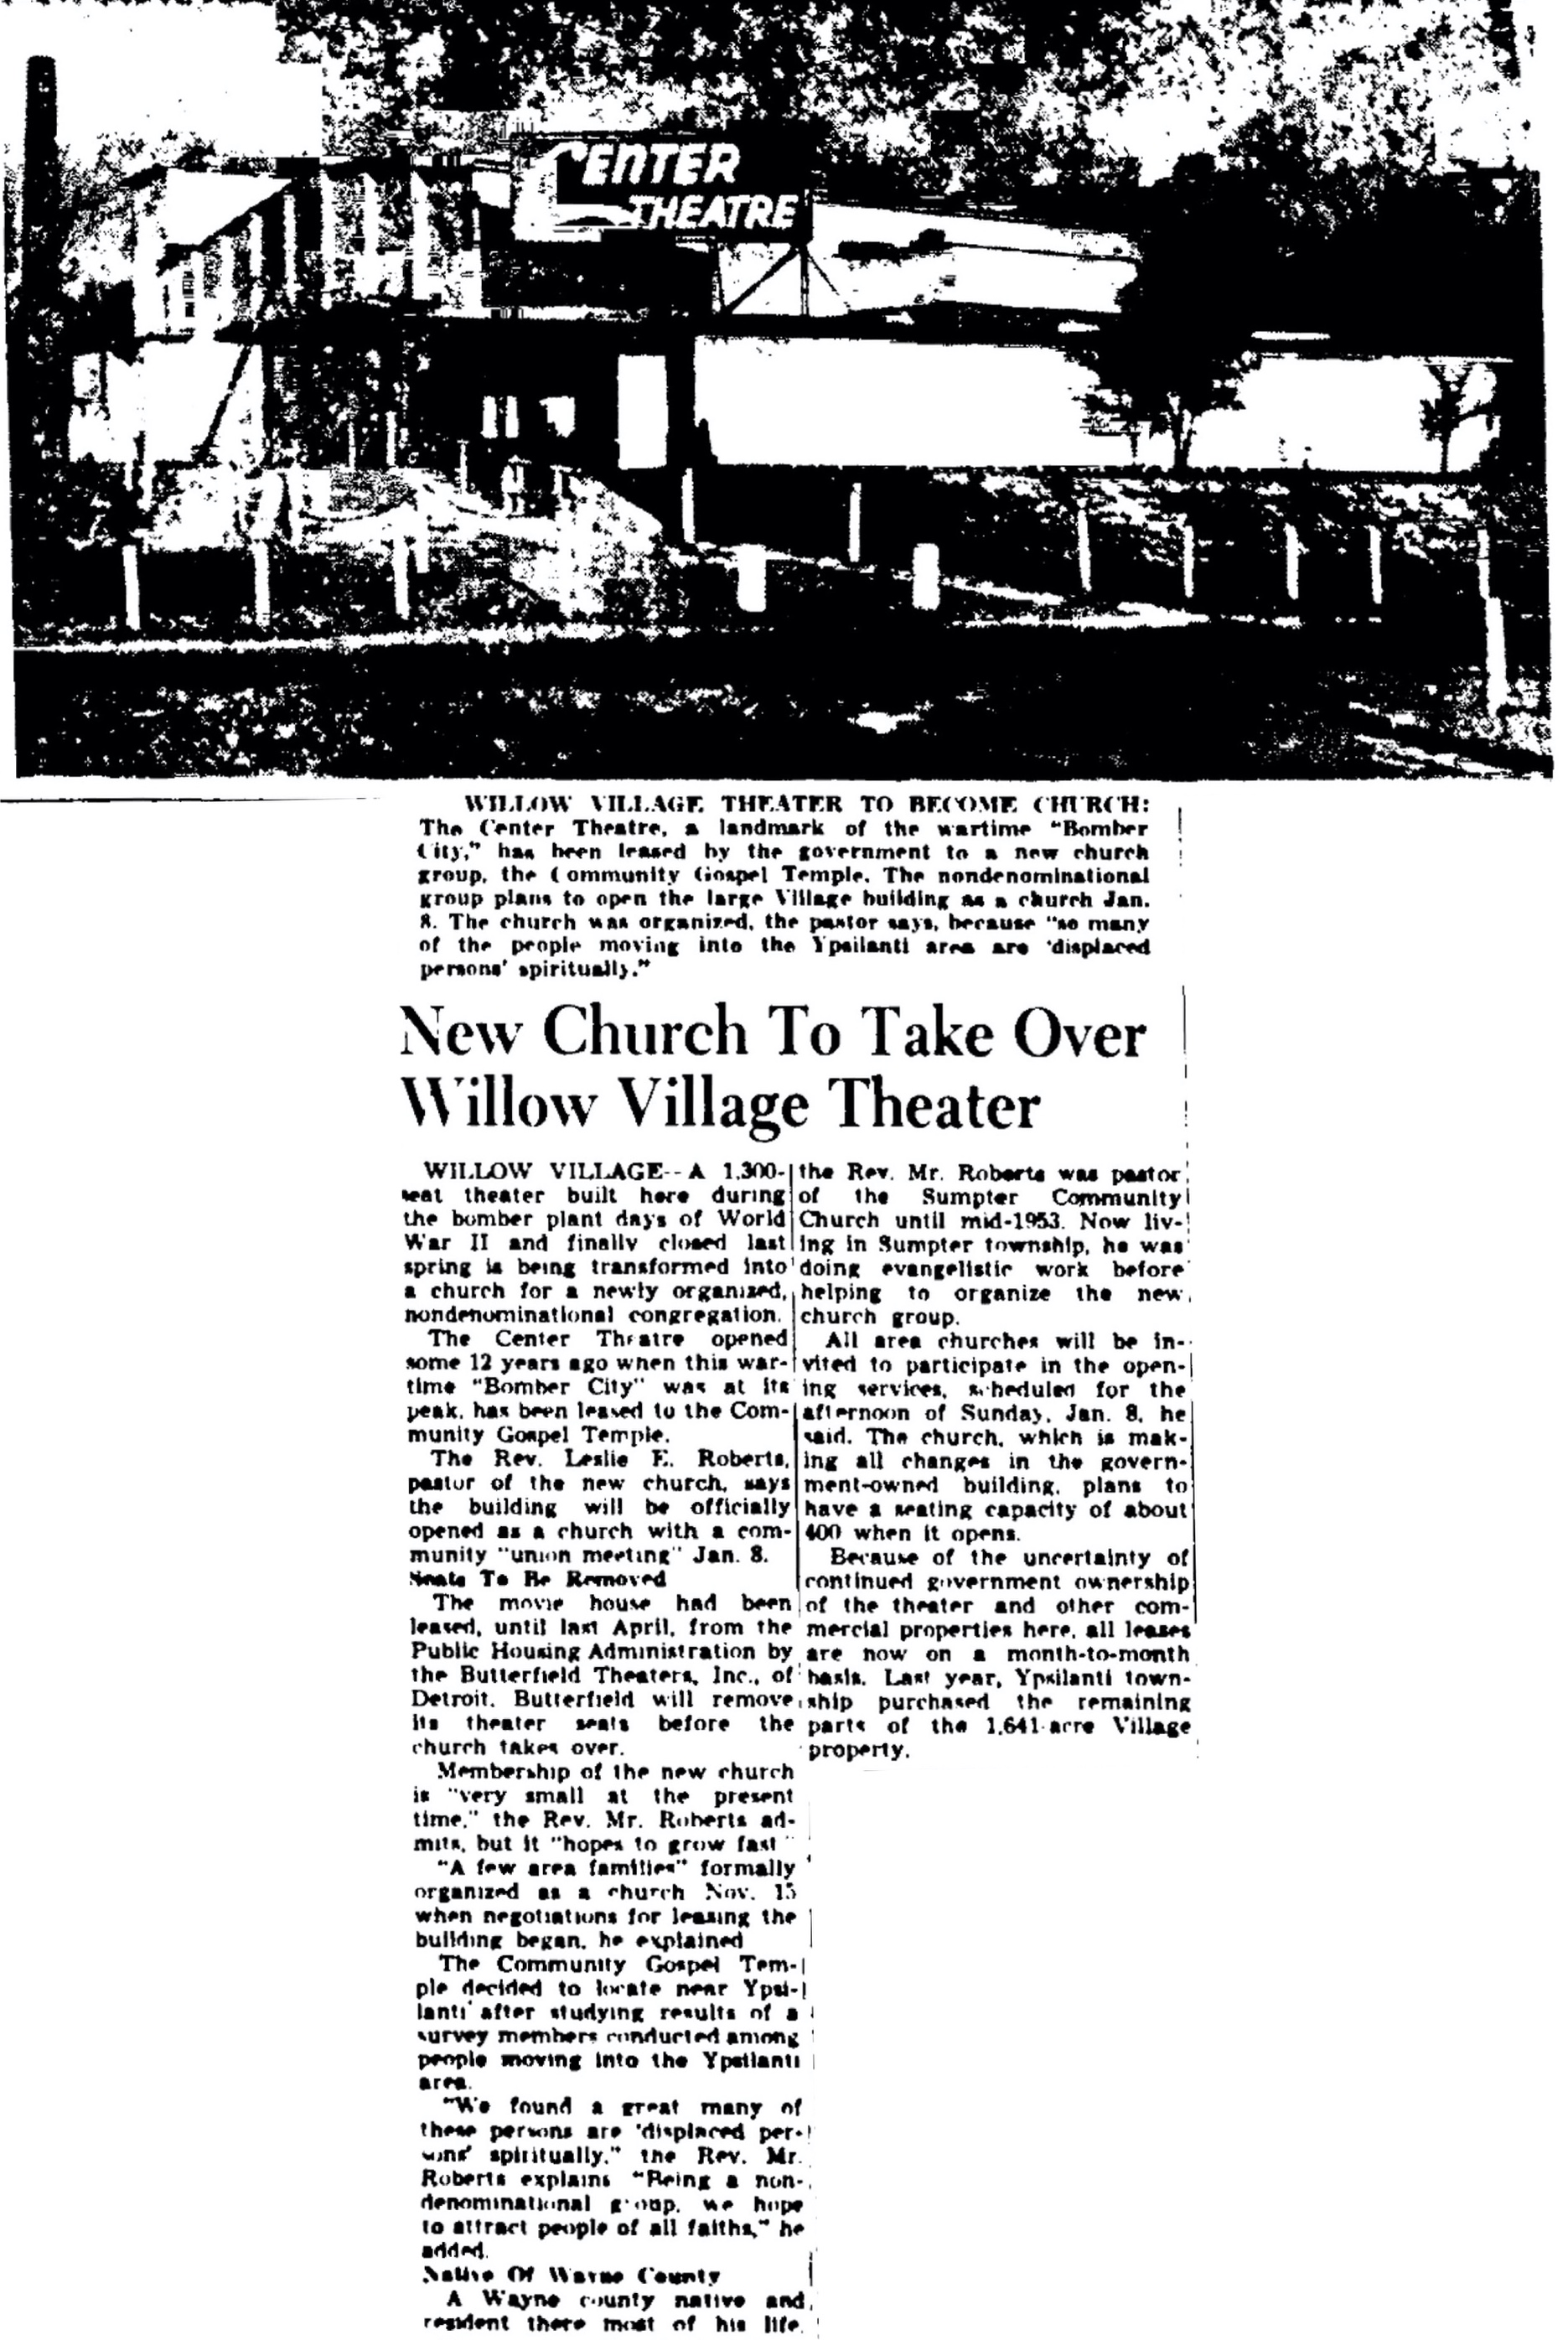 New Church To Take Over Willow Village Theater image